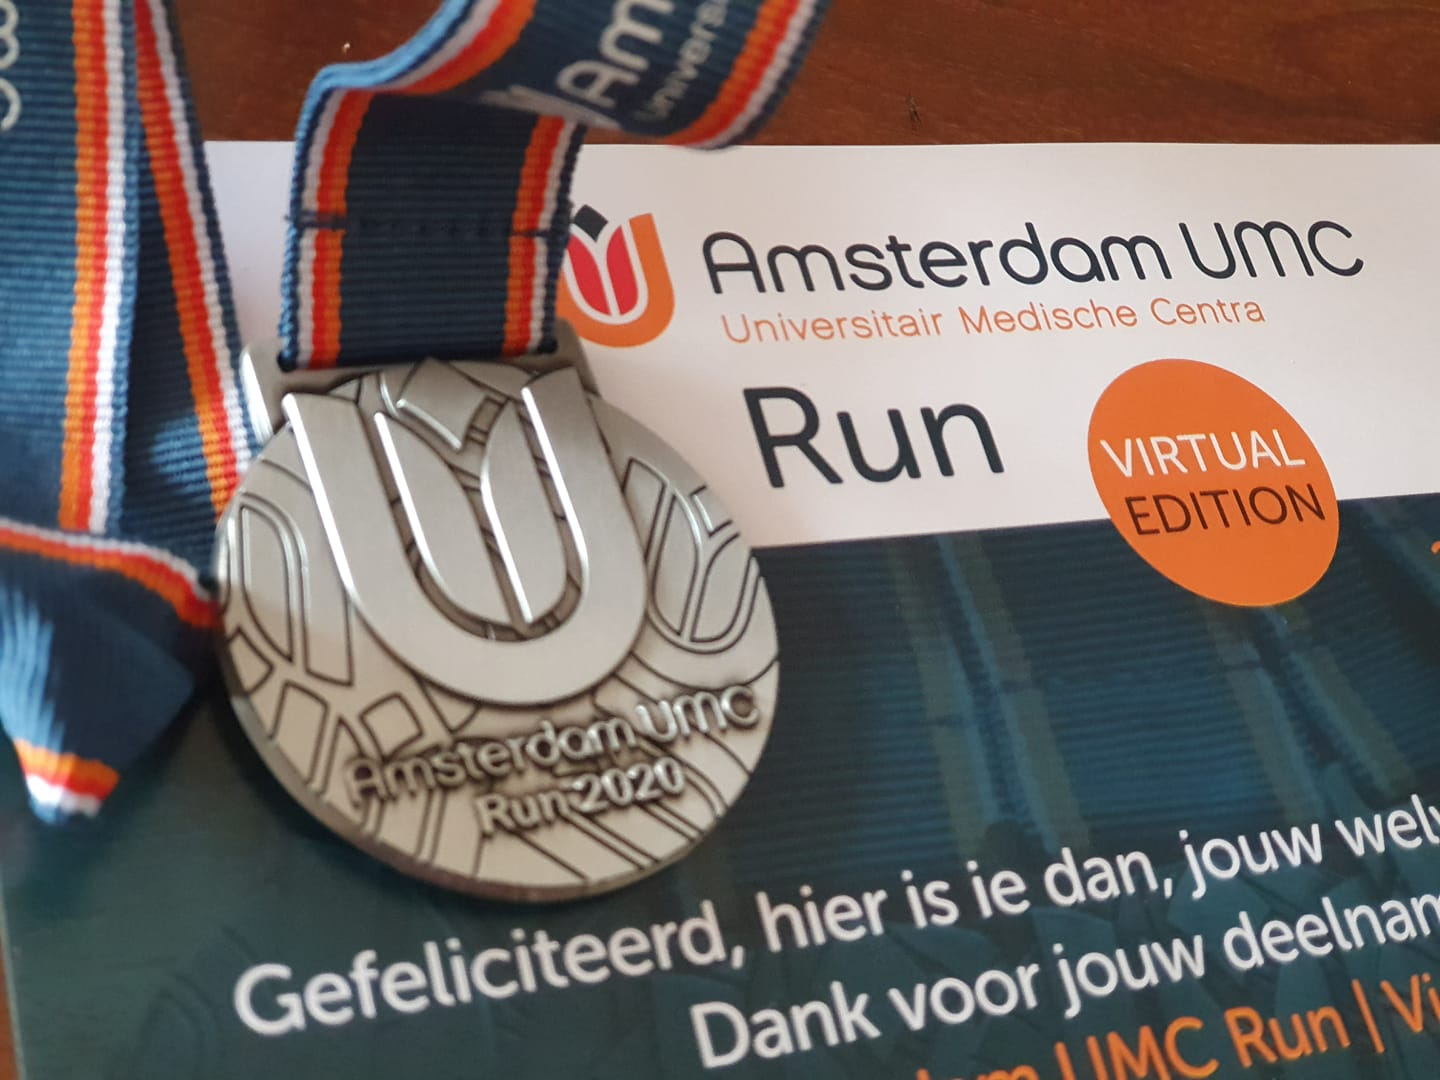 [CAS 2] Amsterdam UMC Run | Virtual Edition